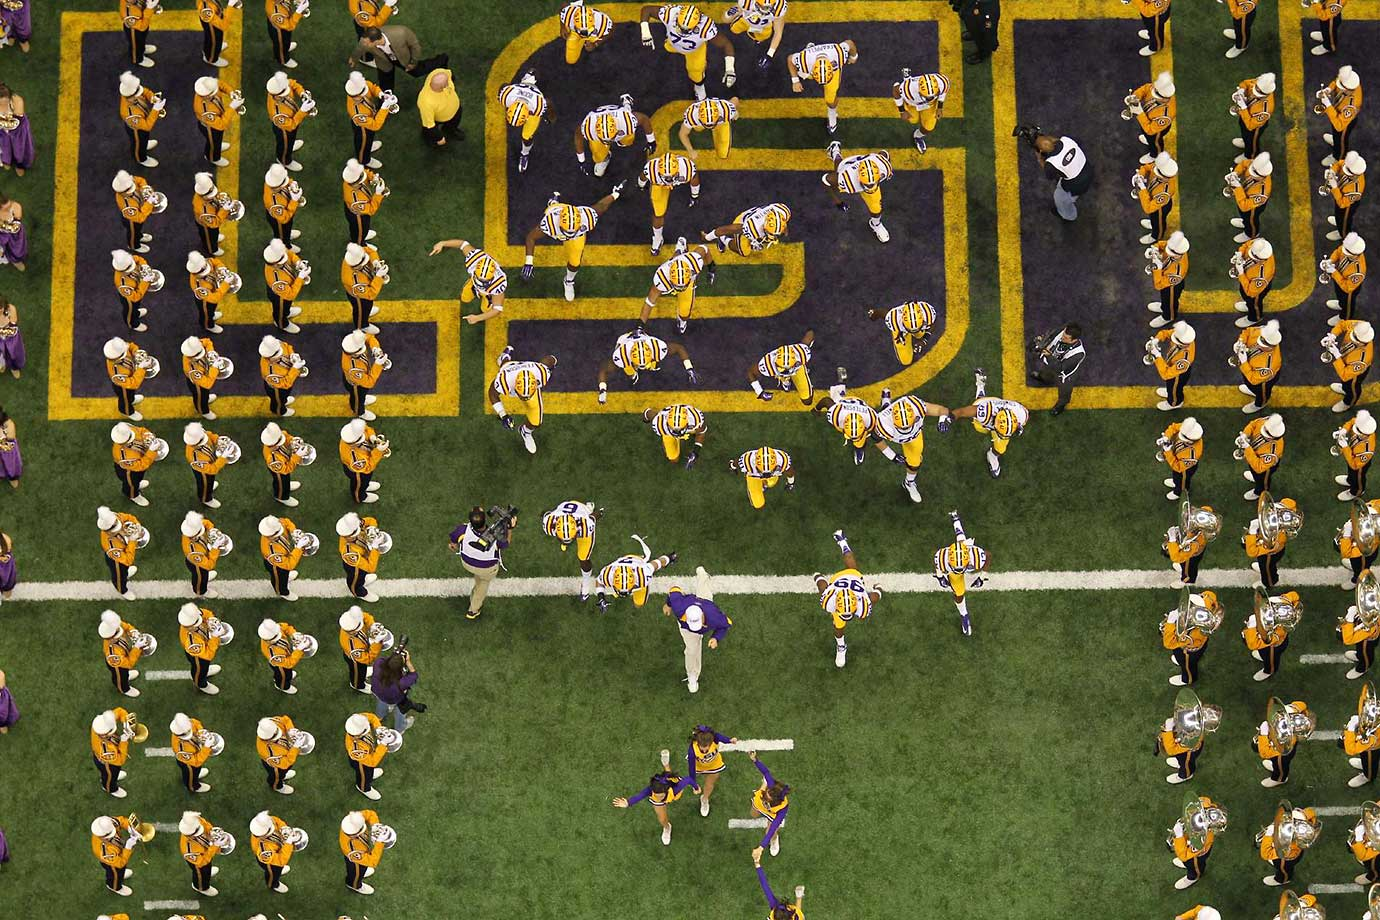 LSU takes the field ahead of the 2012 BCS national championship game against Alabama.